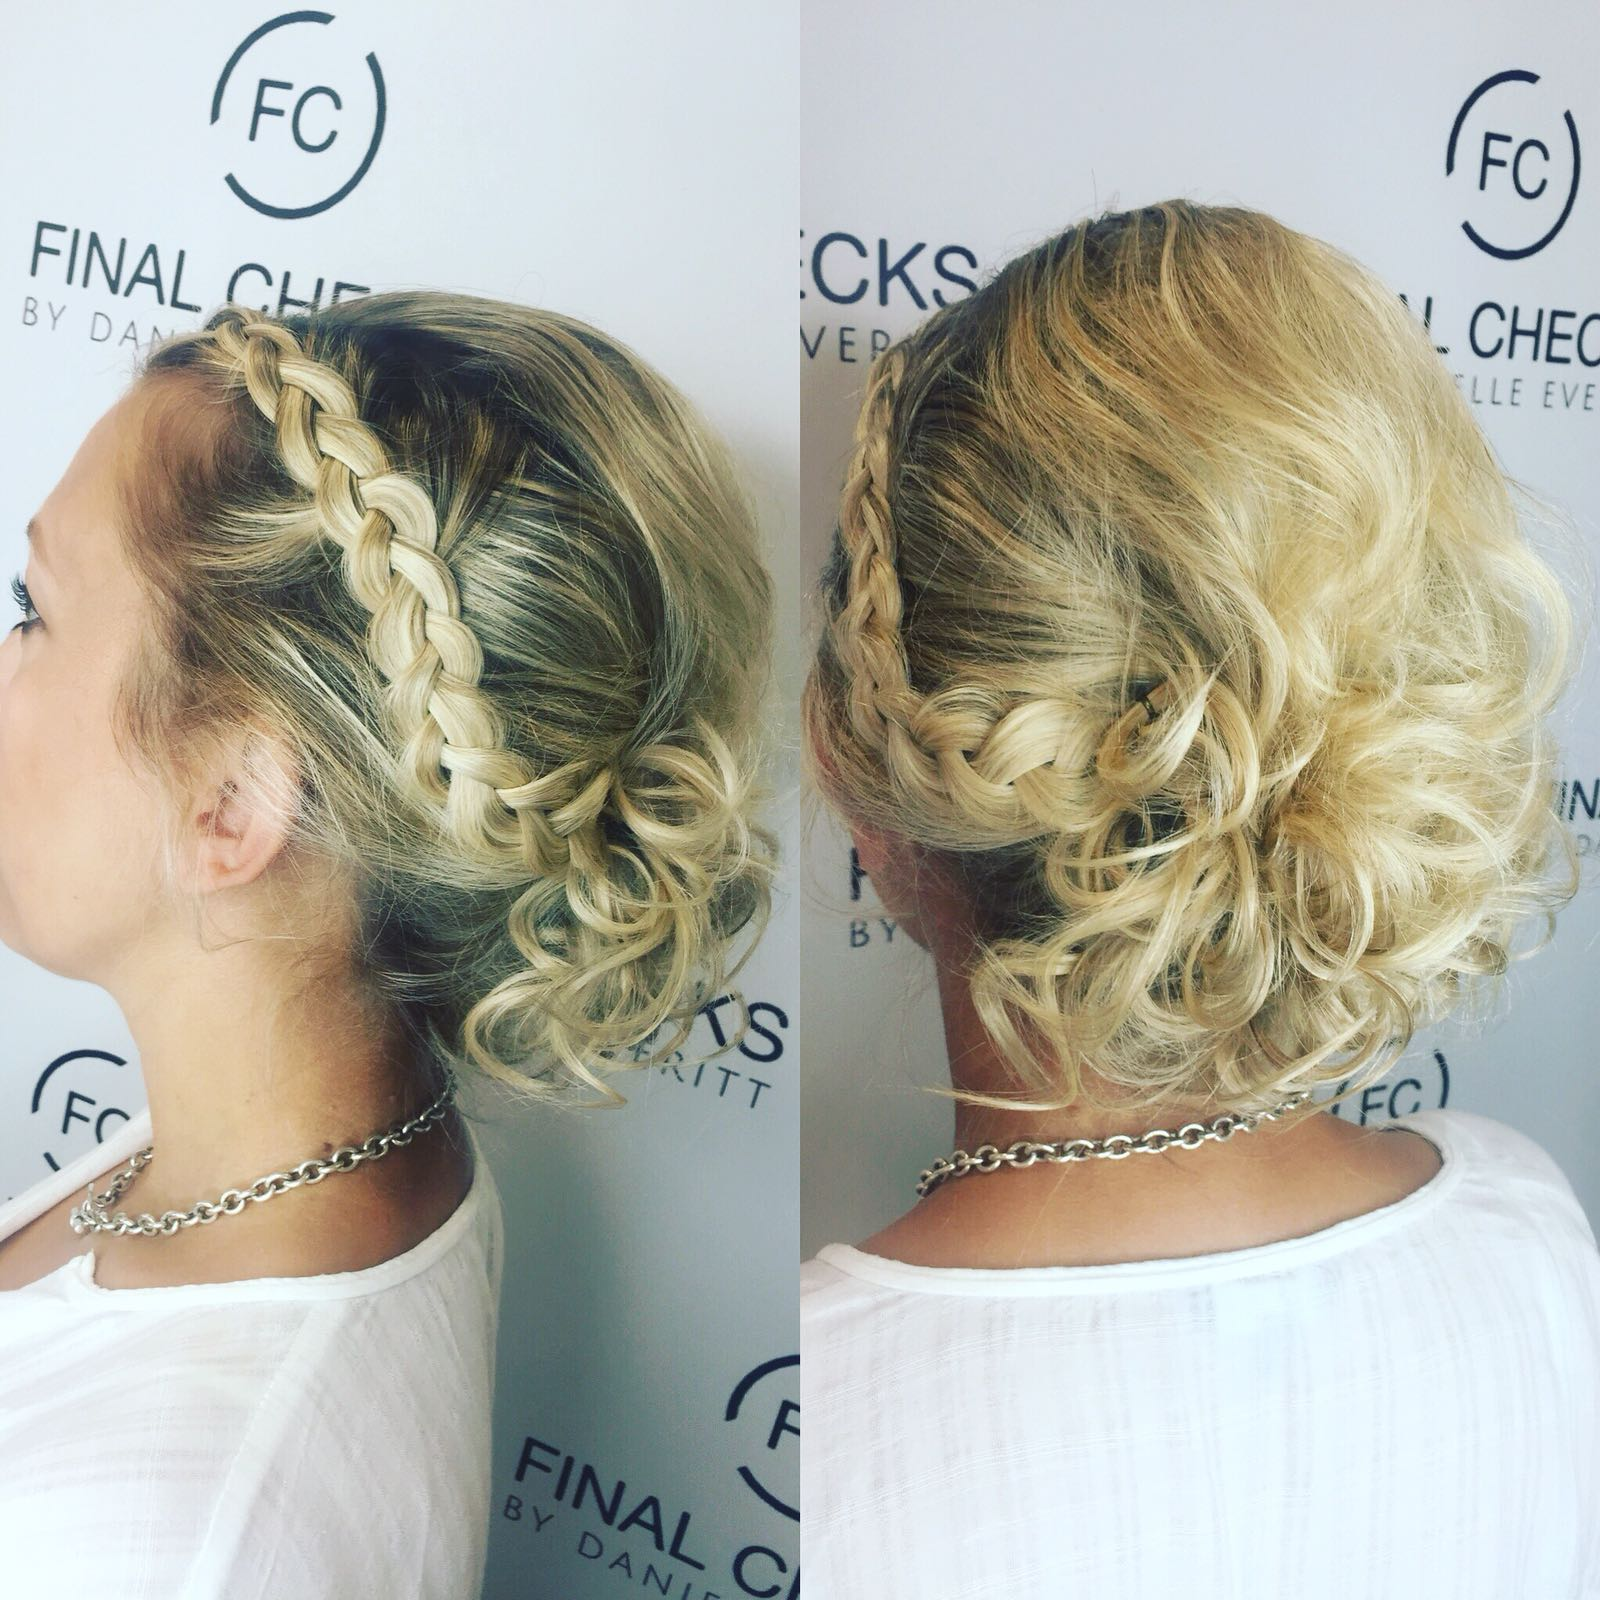 Hairstyles - Whether your need hair up to big hair to soft curls. Our team will create any hair style you desire.(Please click on image to see more images).